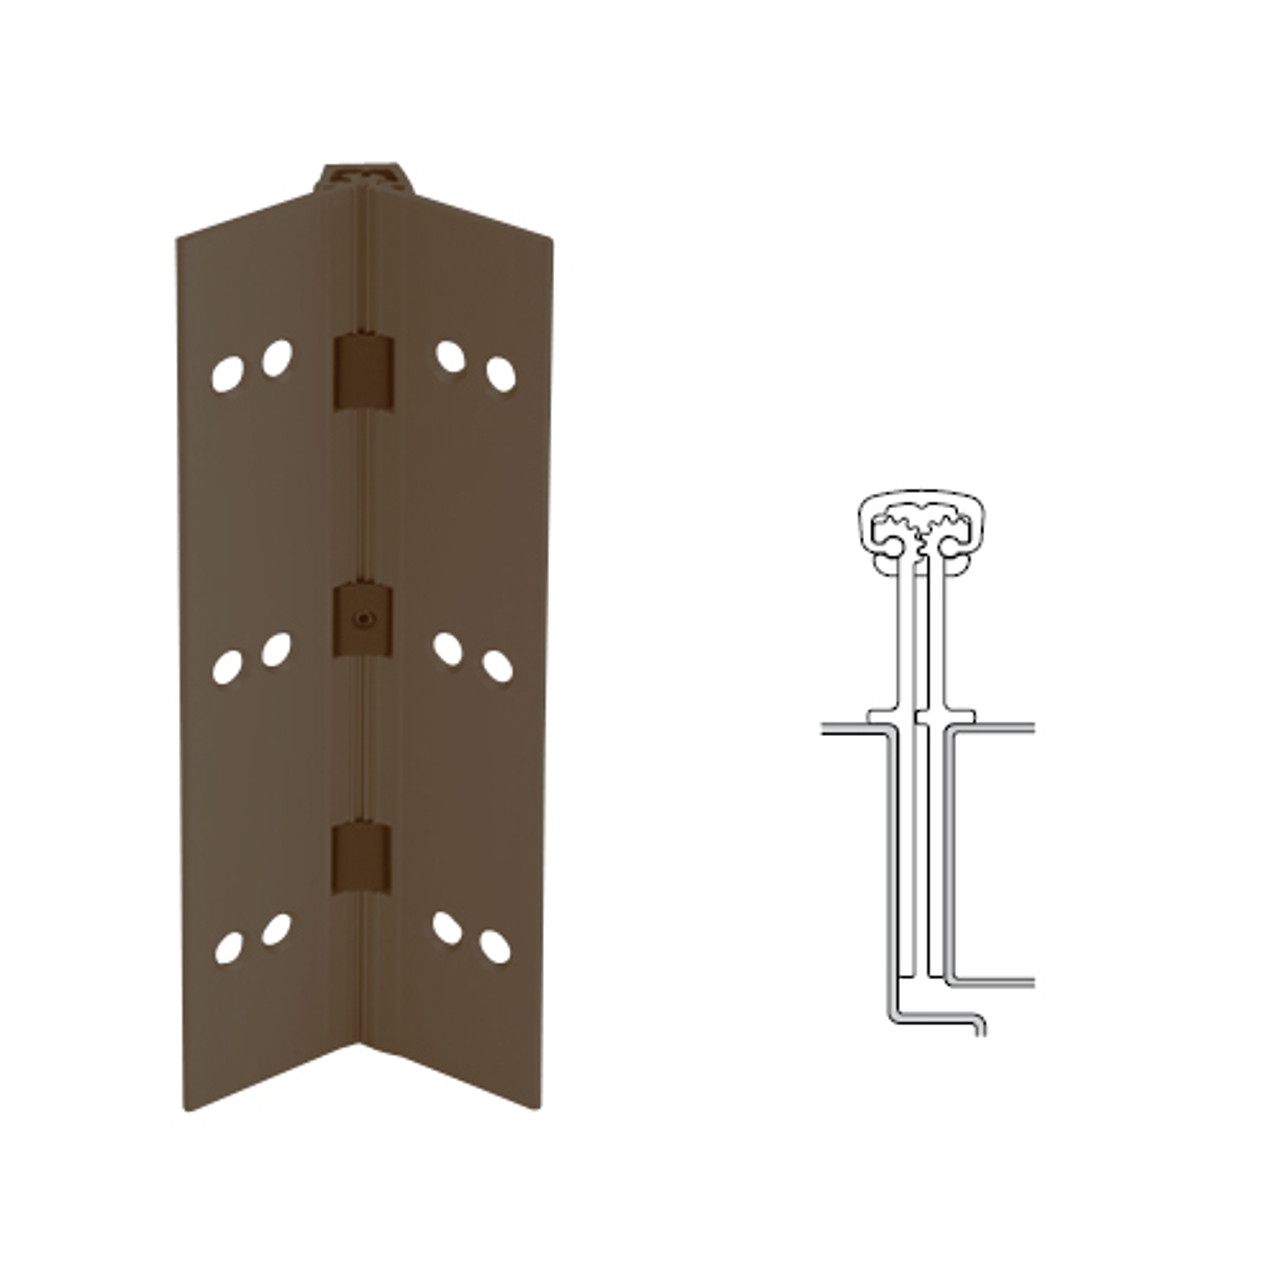 040XY-313AN-85-TFWD IVES Full Mortise Continuous Geared Hinges with Thread Forming Screws in Dark Bronze Anodized